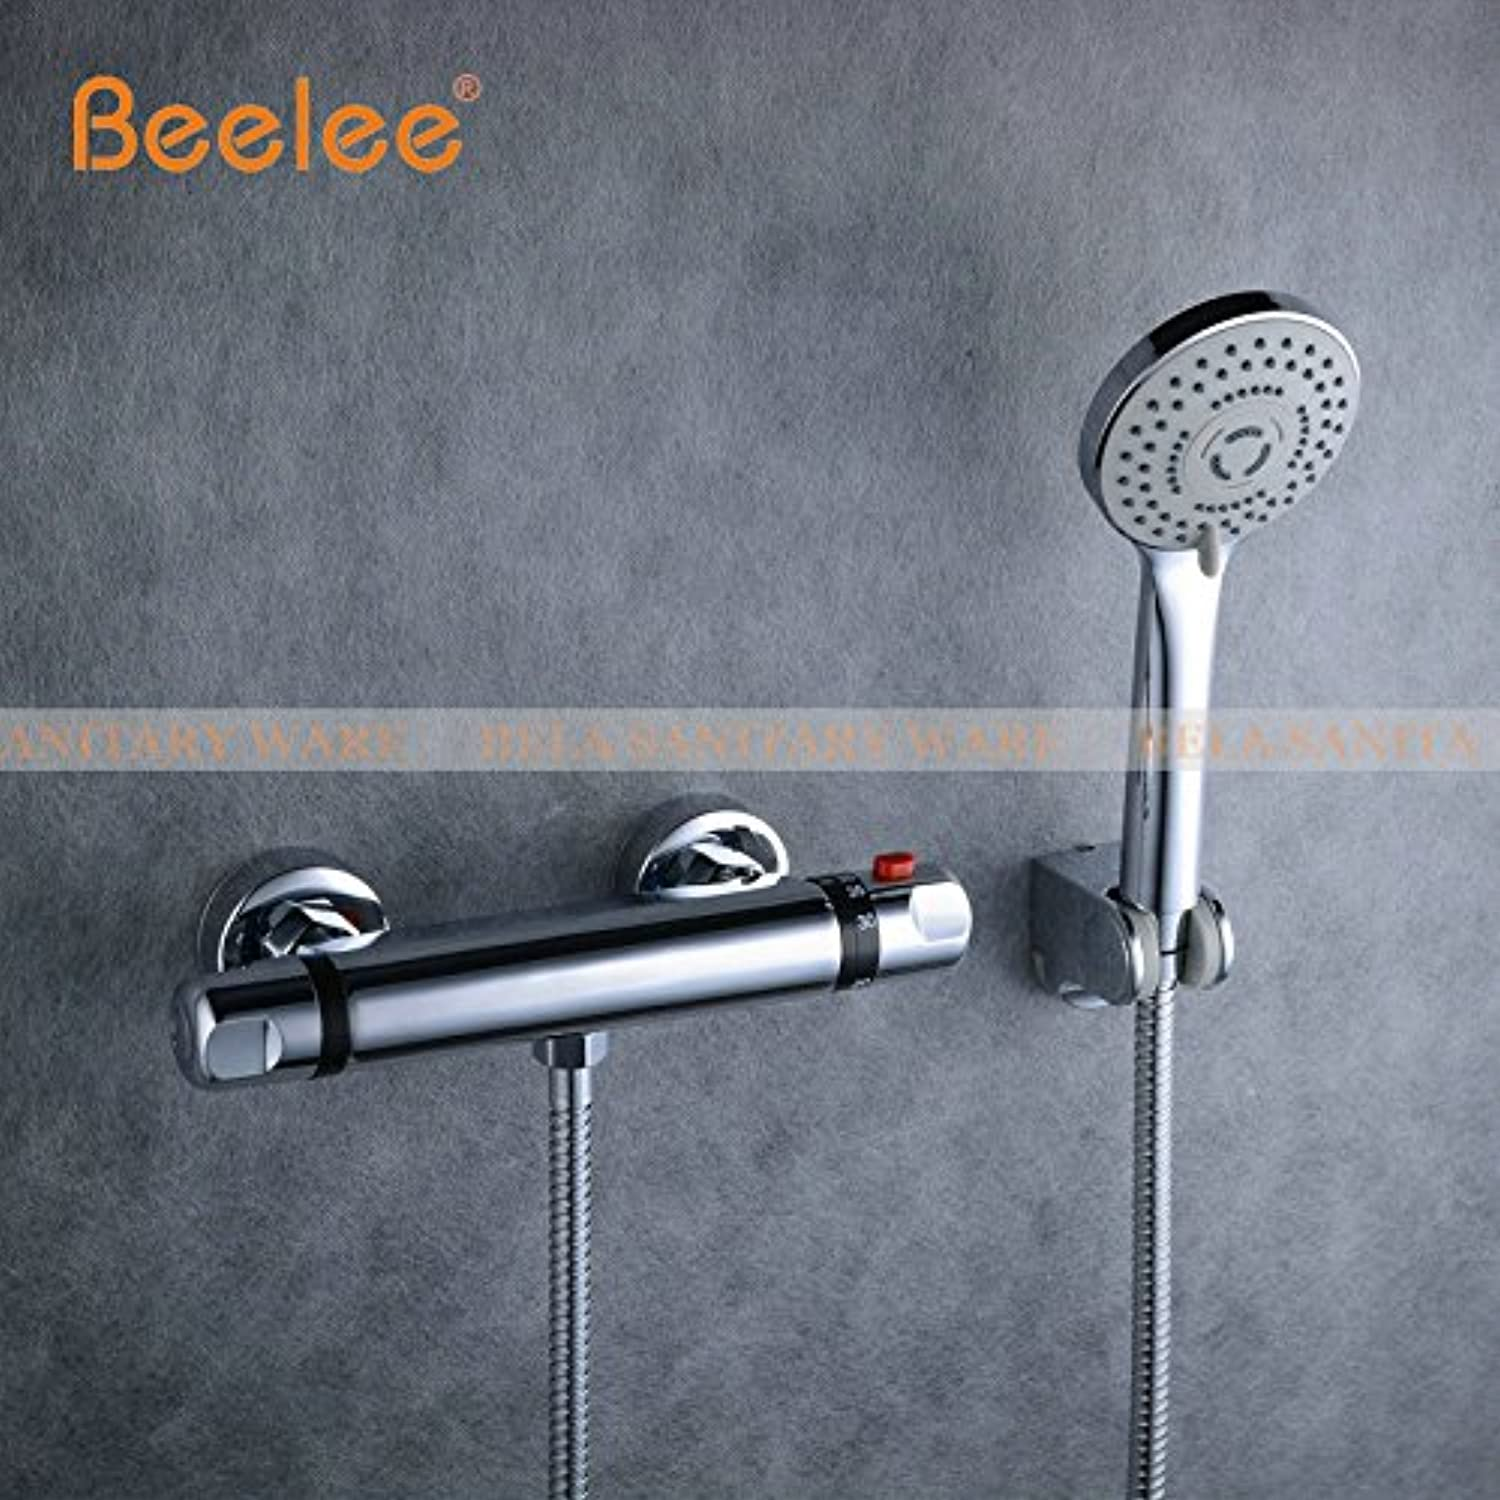 Luxurious shower Beelee neue Dusche Wasserhahn Set Bad thermostatische Mischbatterie Chrom Mischbatterie W ABS Handbrause Wandmontage BL0205, BL0205 P